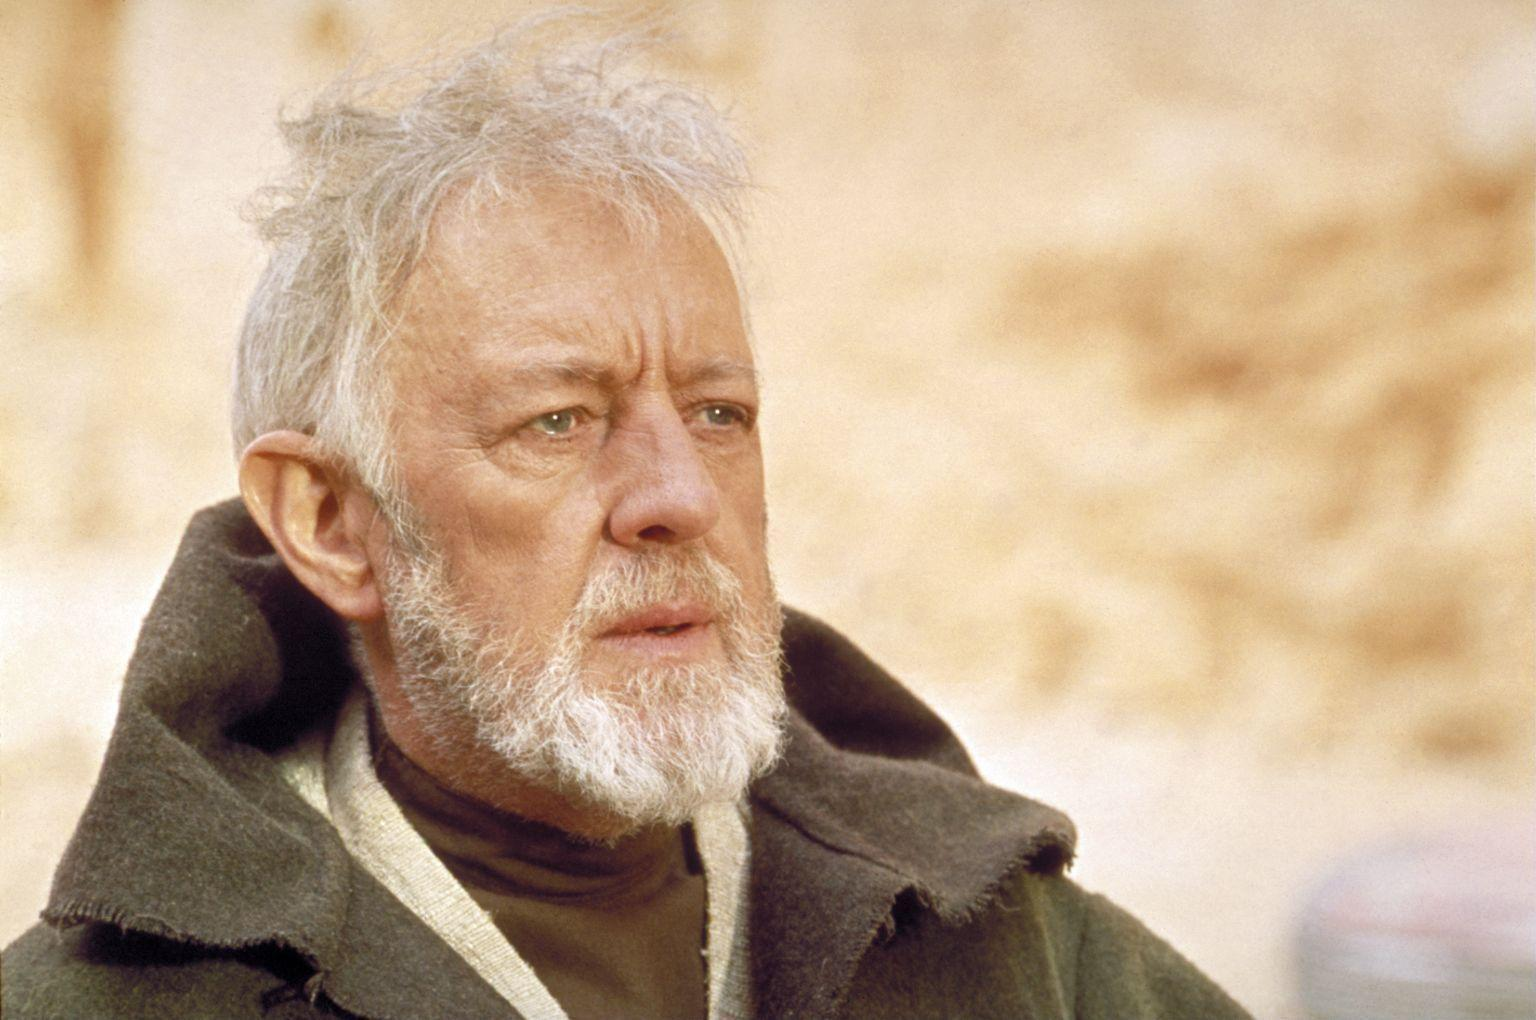 Star Wars - Alec Guiness